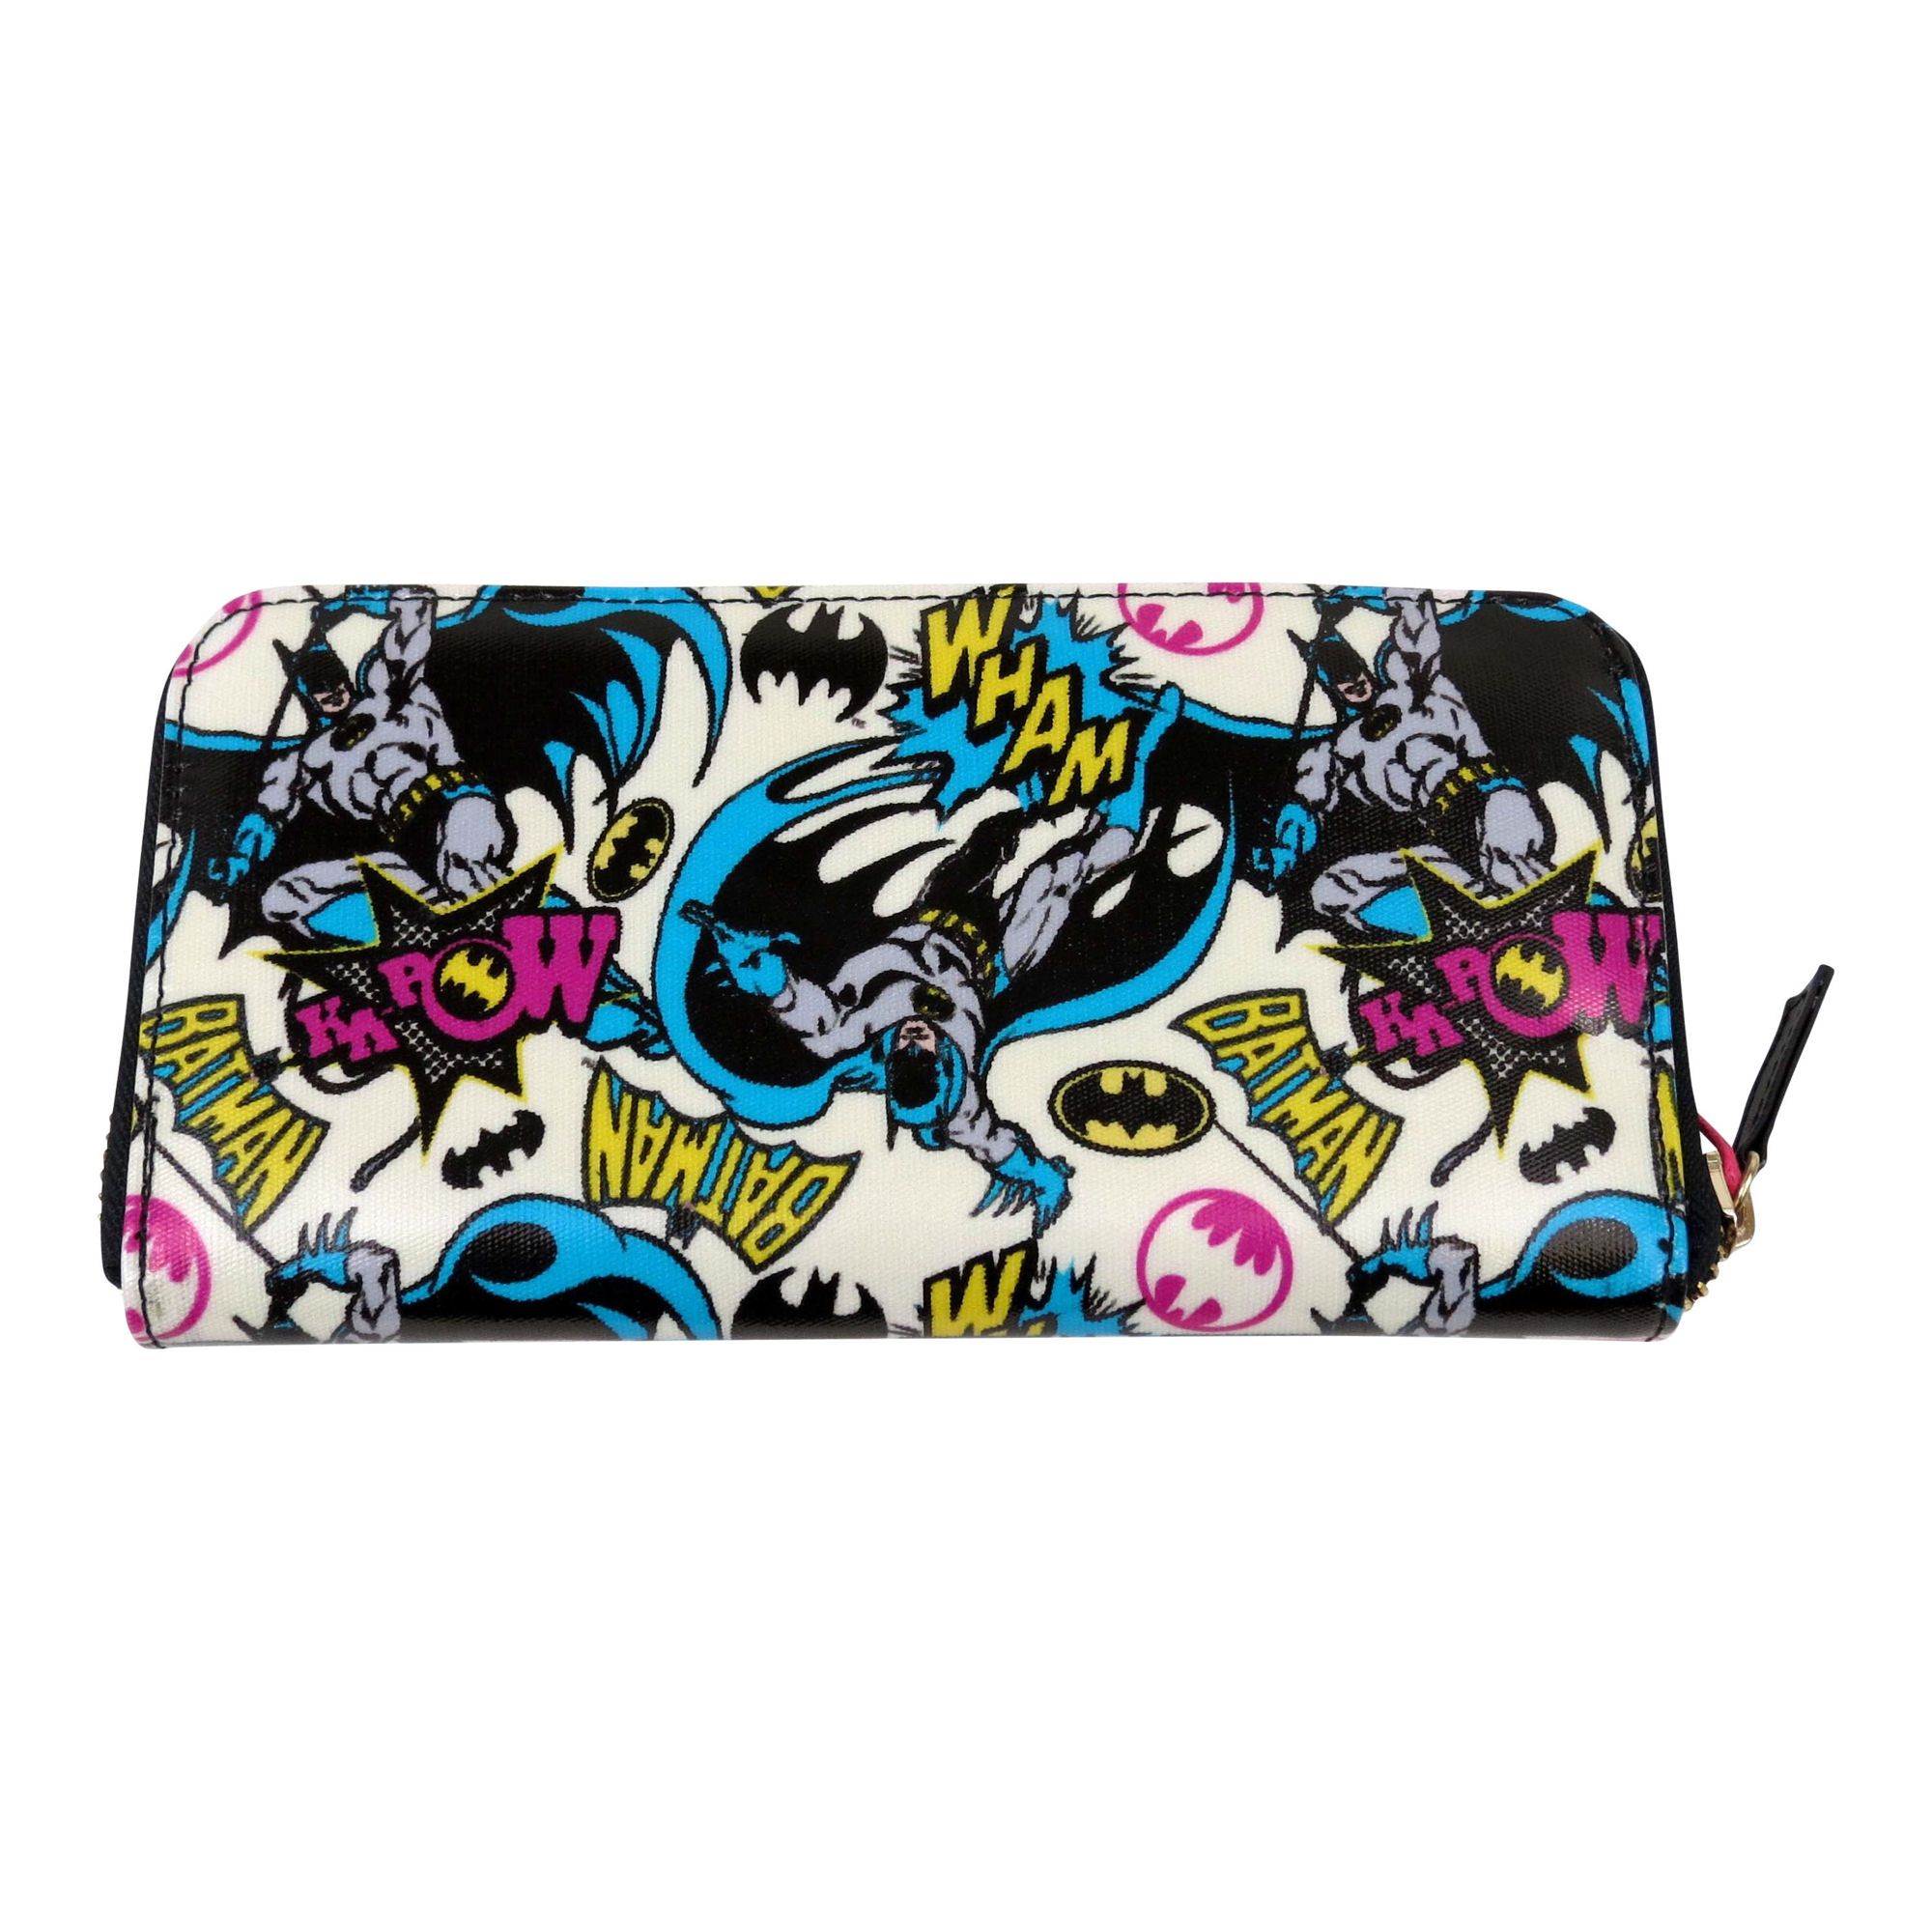 Large Batman Pop Art Zipped Purse